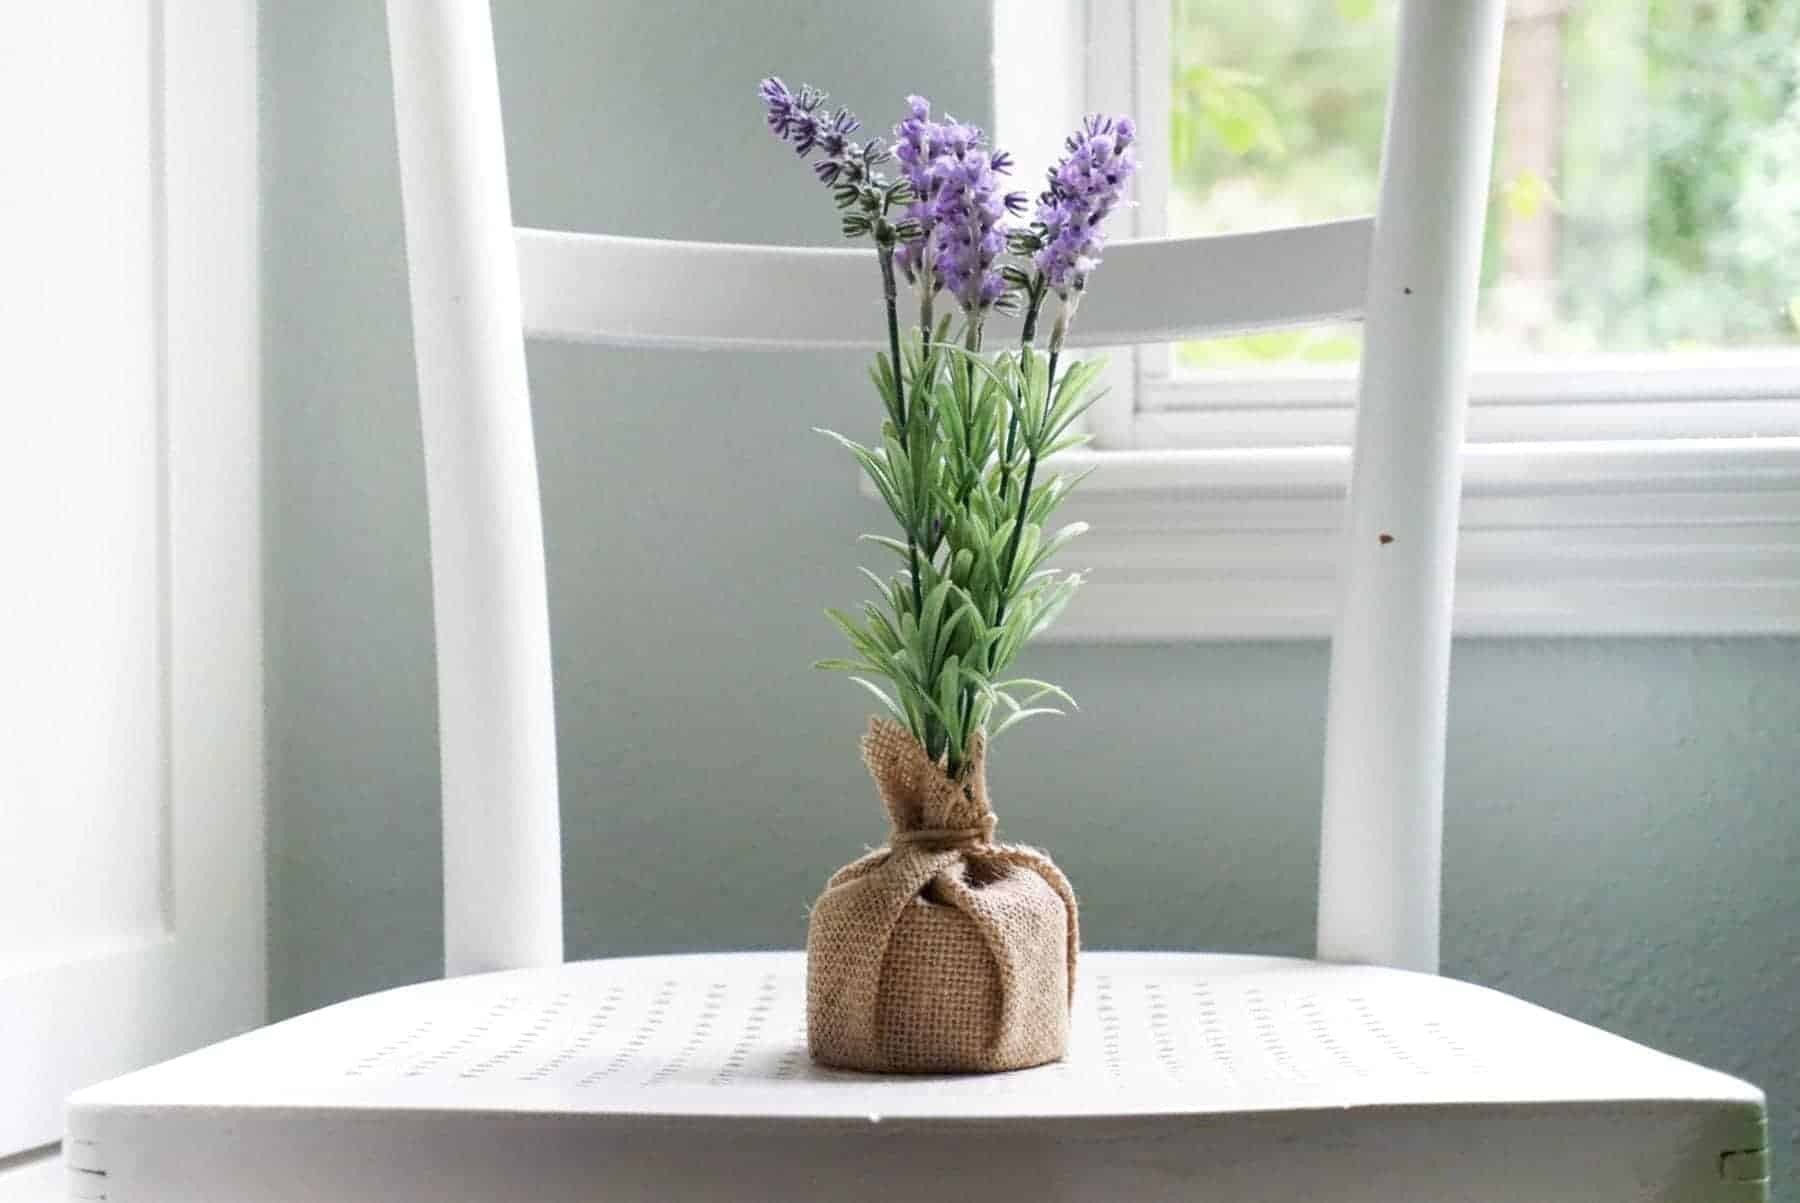 Lavender Flowers In A Burlap Sack Sitting On A Chair